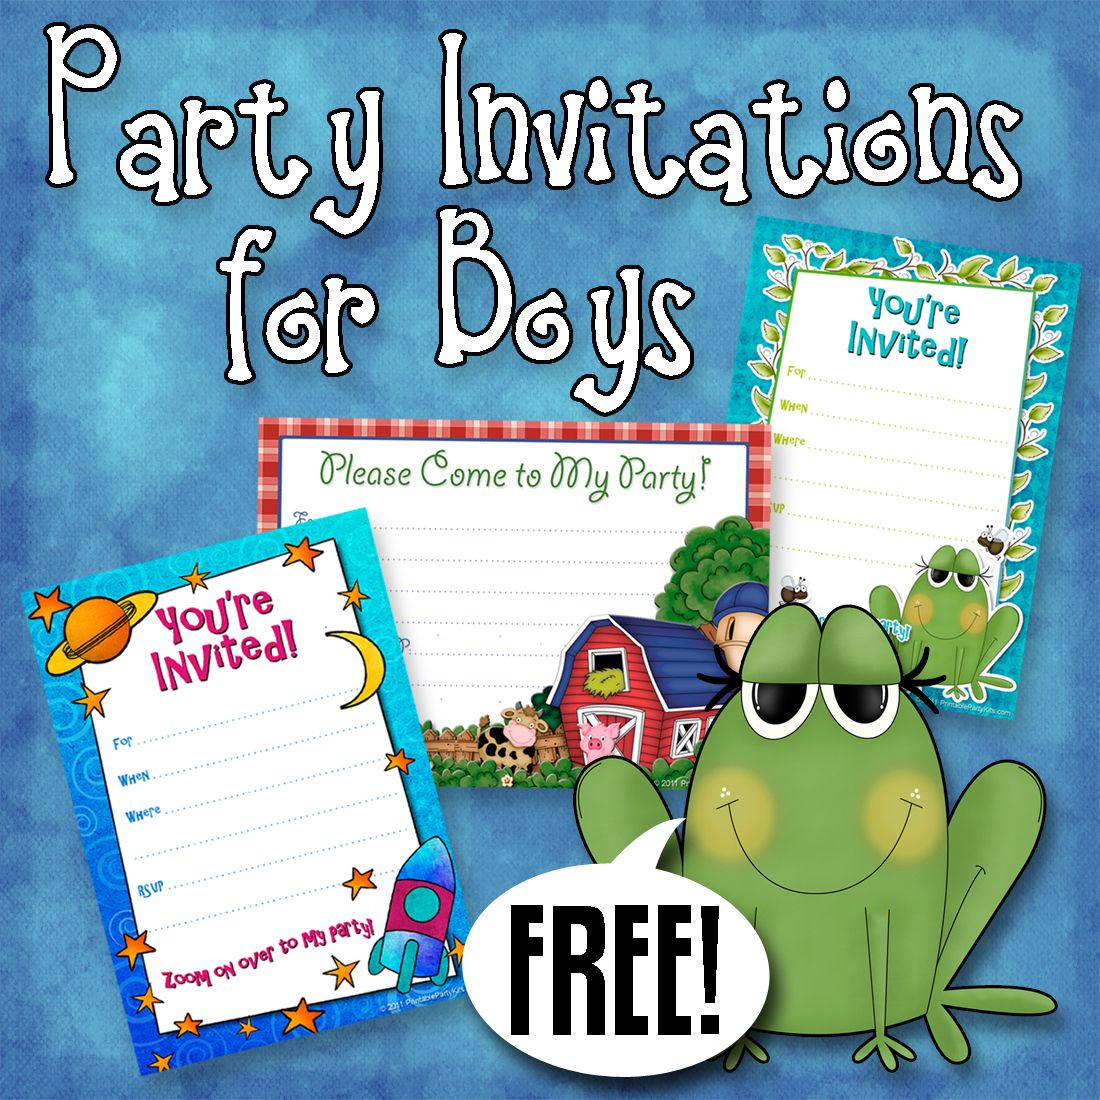 Free Printable Boys Birthday Party Invitations | Party Printables - Free Printable Boy Birthday Invitations